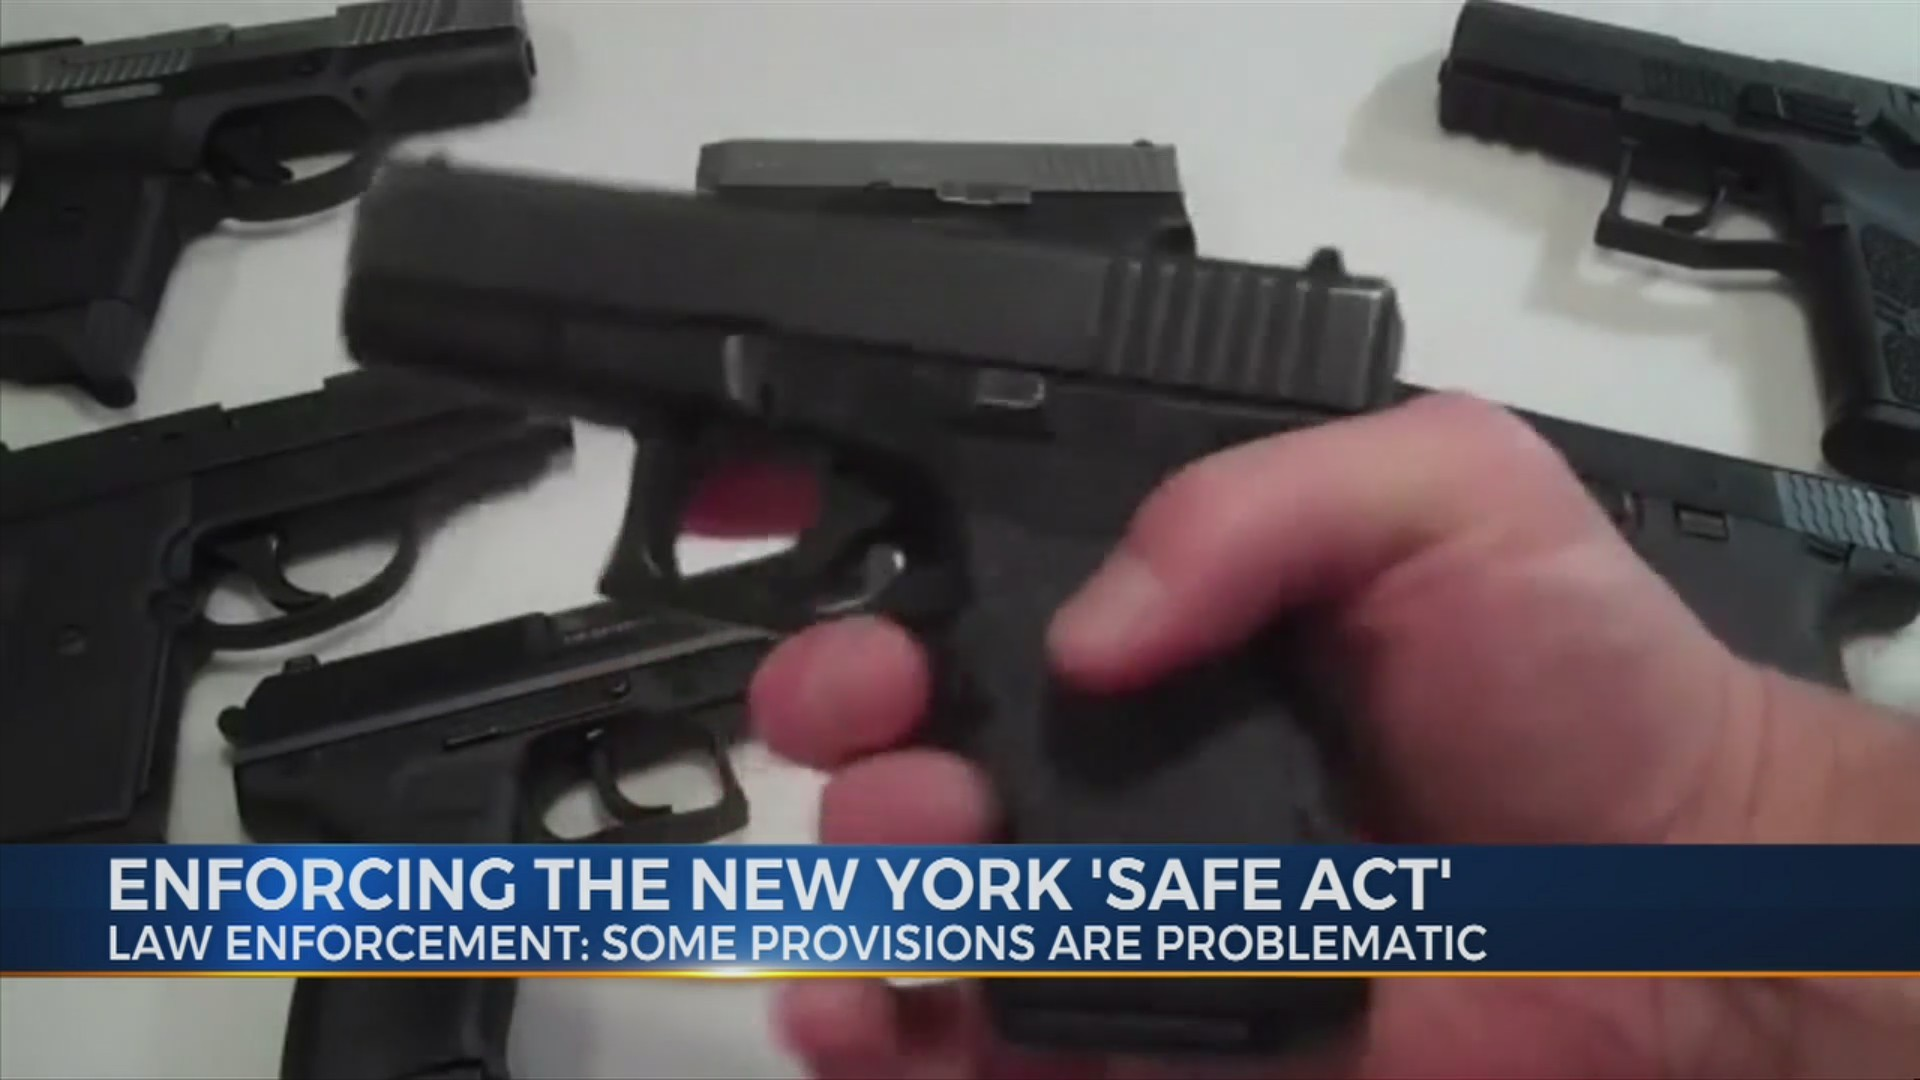 Enforcing_the_New_York__SAFE_Act__9_20181129233125